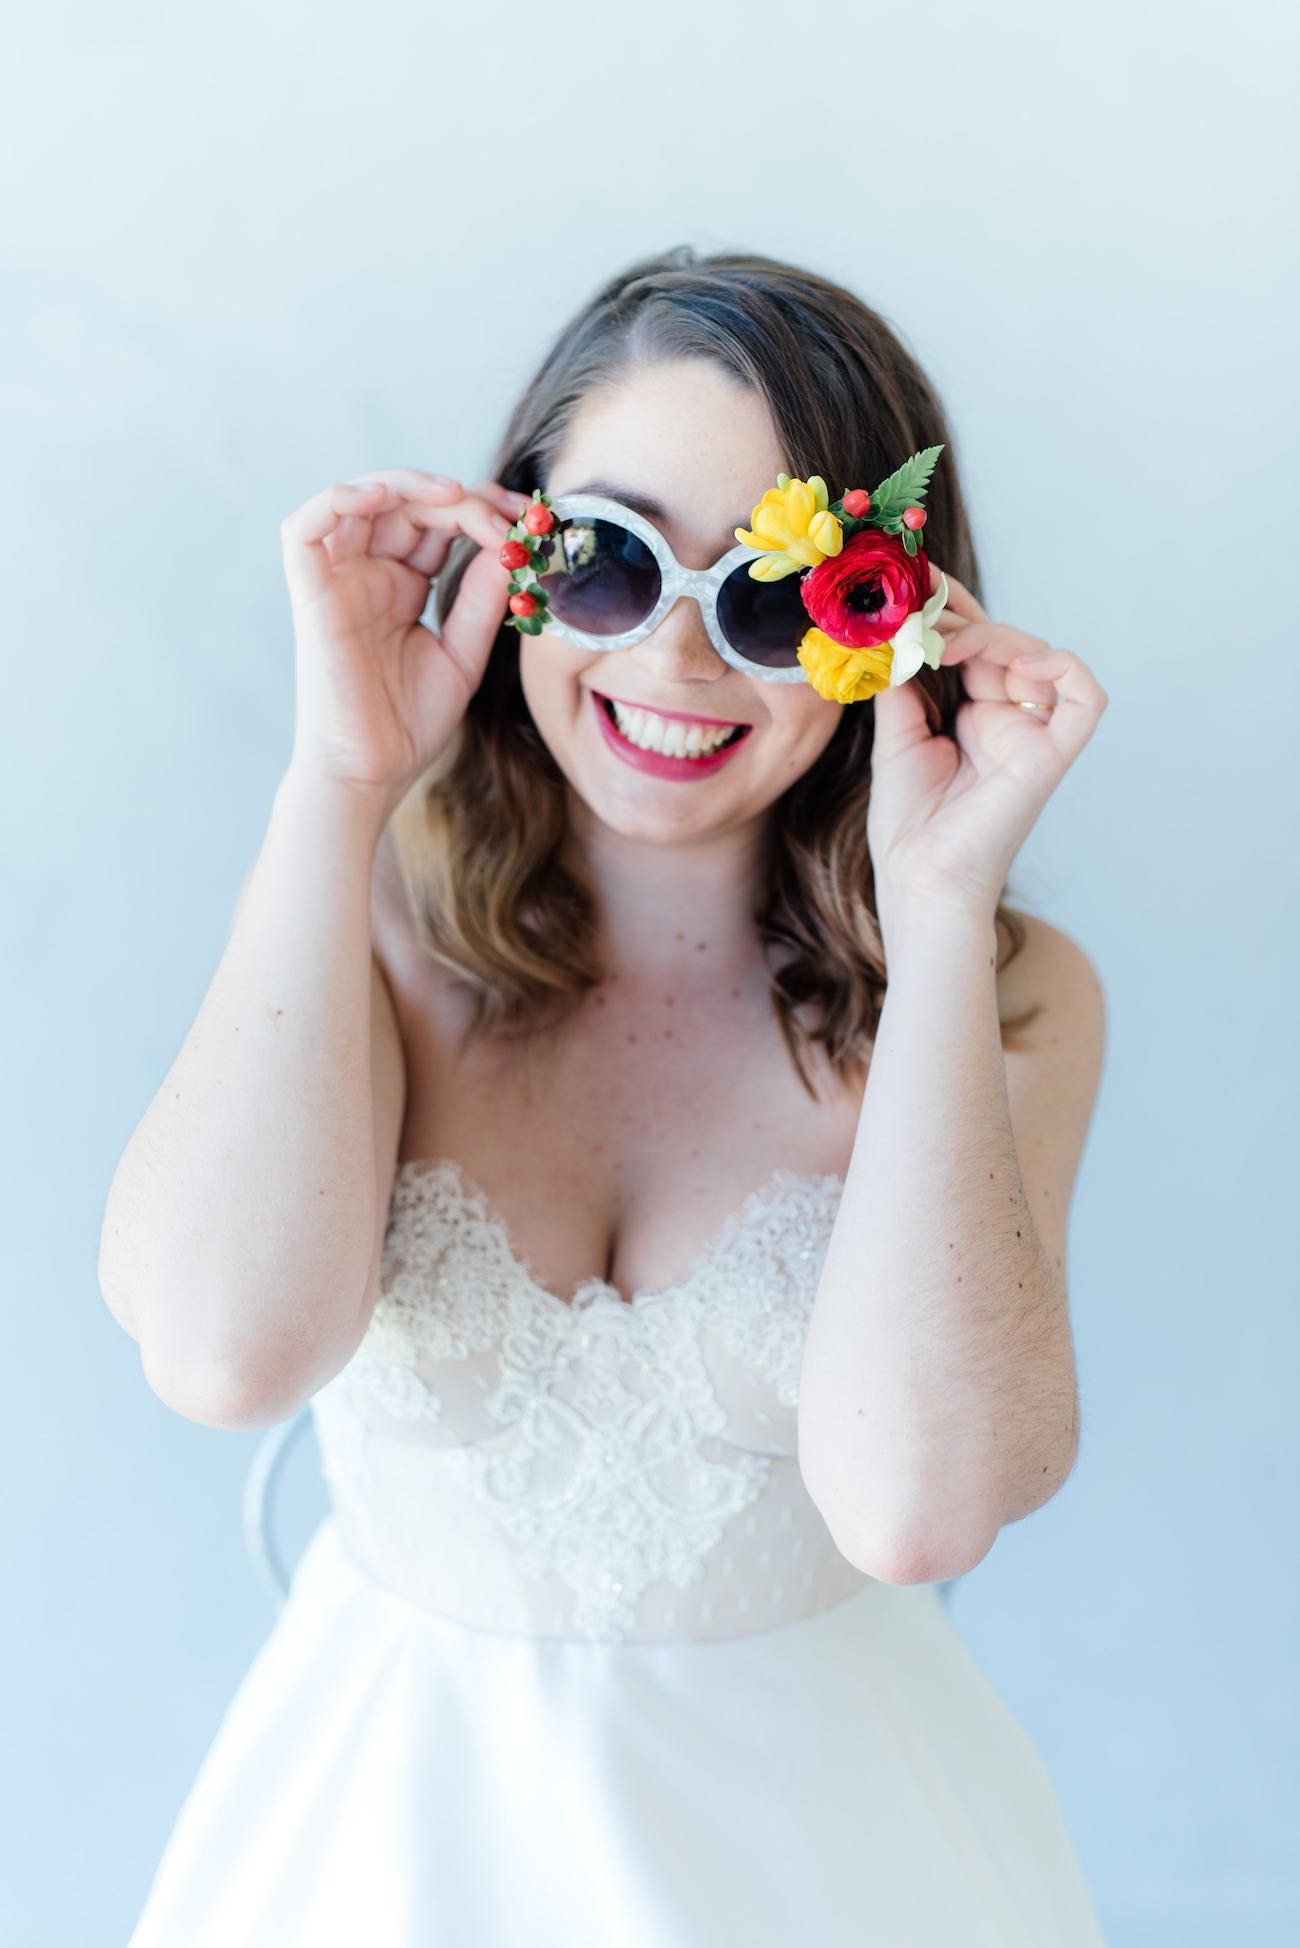 Fun tropical flower beach bridesmaid sunglasses idea. Click for the most absolutely gorgeous Tropical Wedding ideas ever!